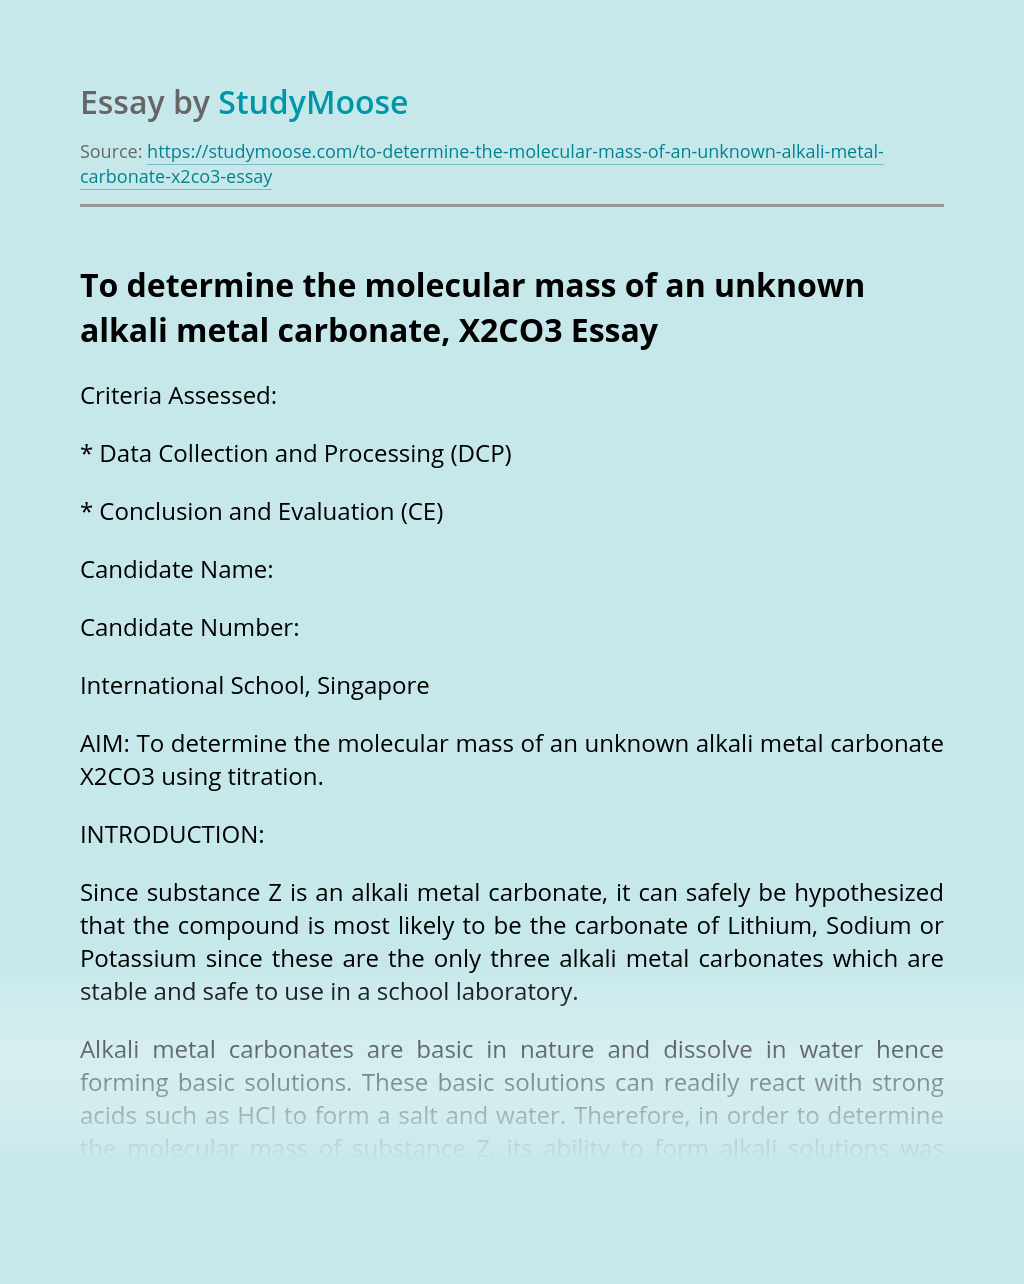 To determine the molecular mass of an unknown alkali metal carbonate, X2CO3